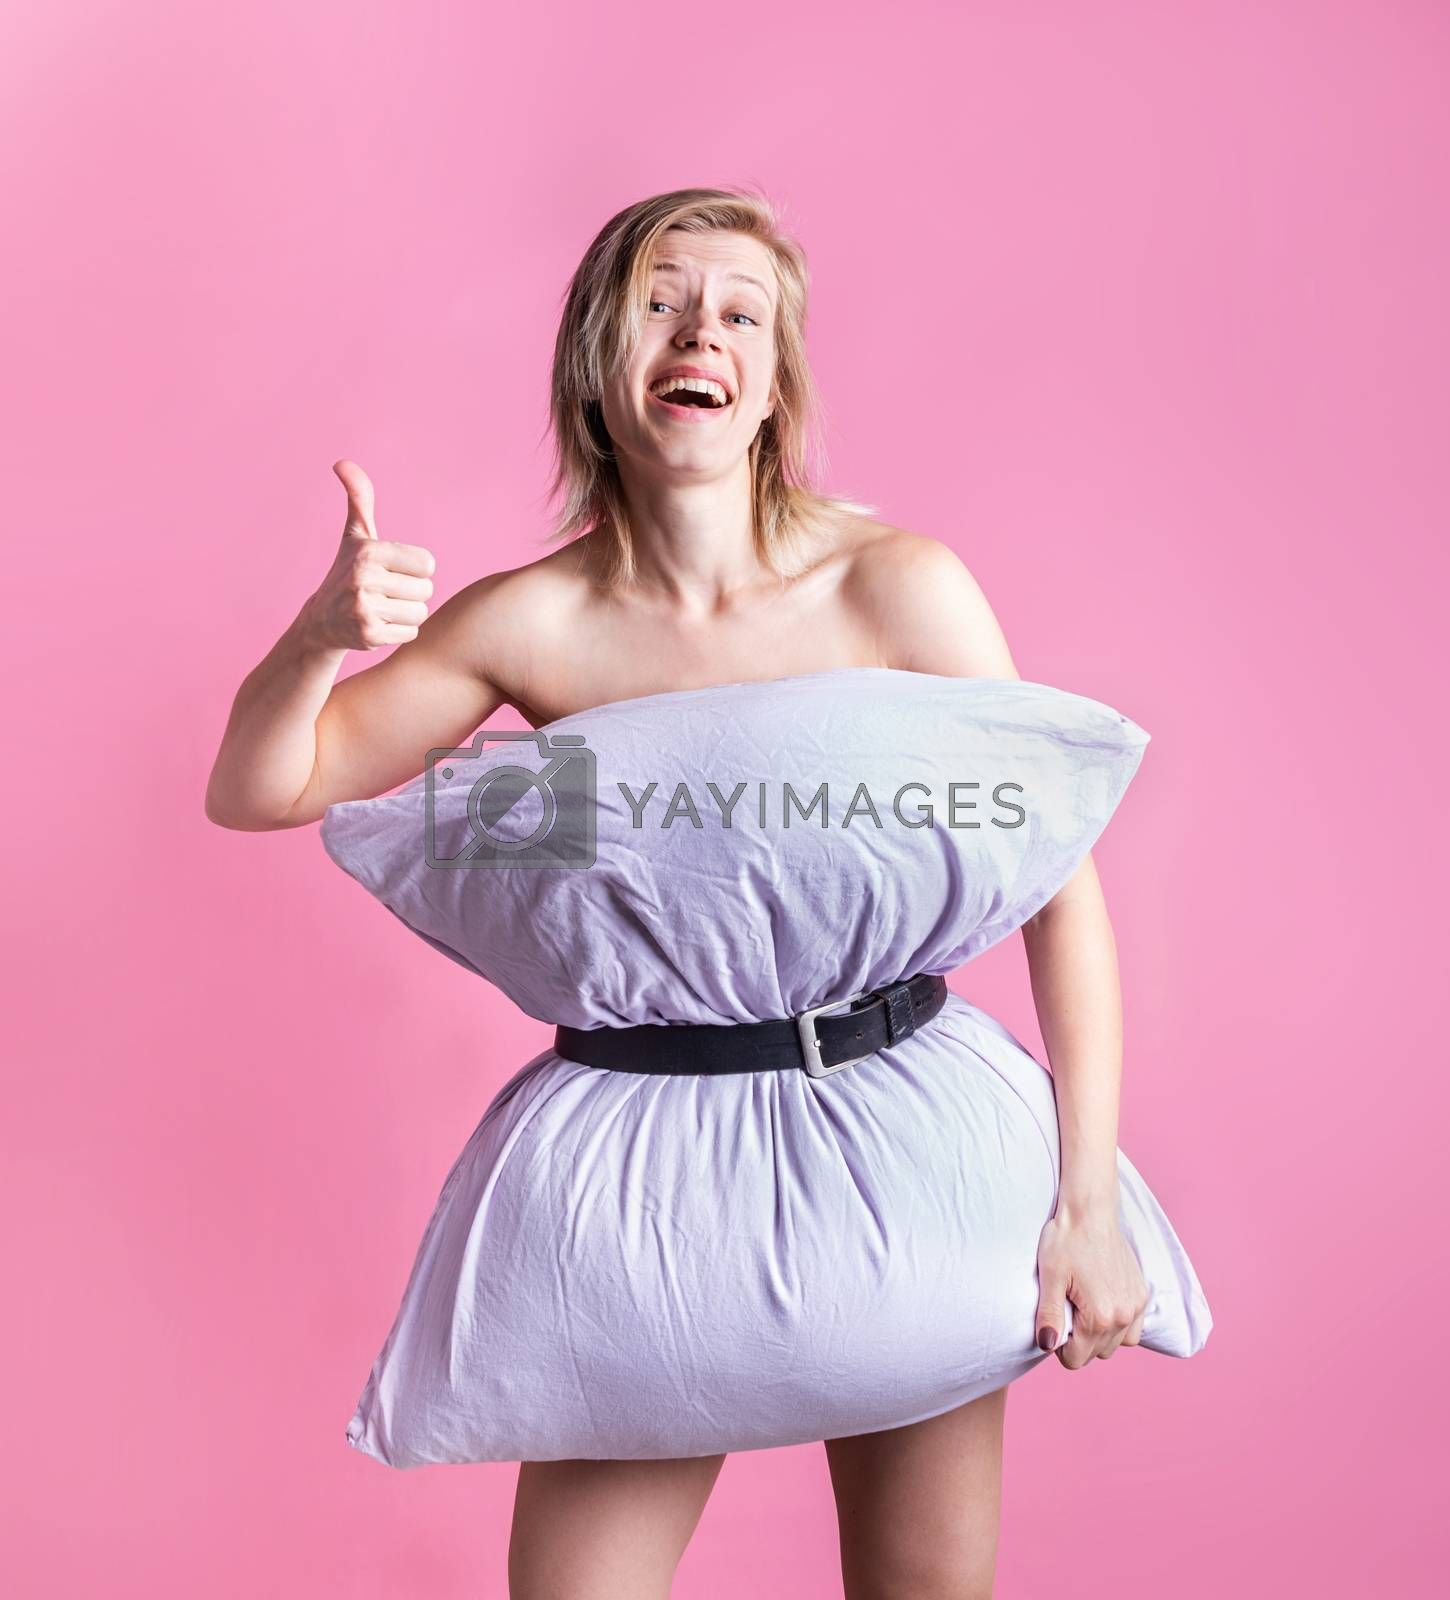 Coronavirus quarantine. Crazy quarantine. Young blond woman dressed in pillow laughing showing thumbs up on pink background. Pillow challenge outbreak